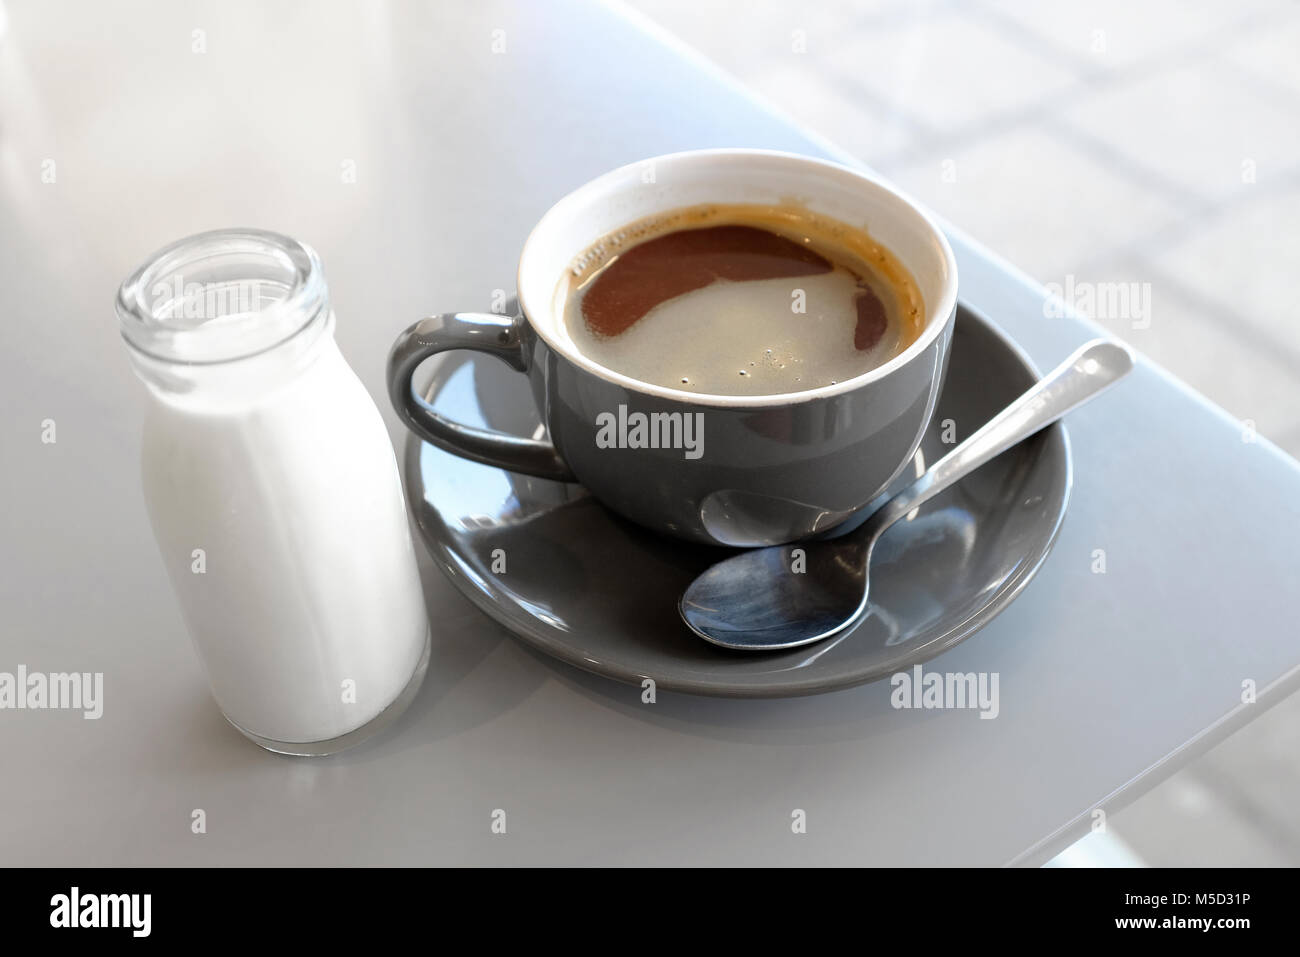 Americano Coffee English Skimmed Milk Stock Photos And Skimmed Milk Stock Images Alamy